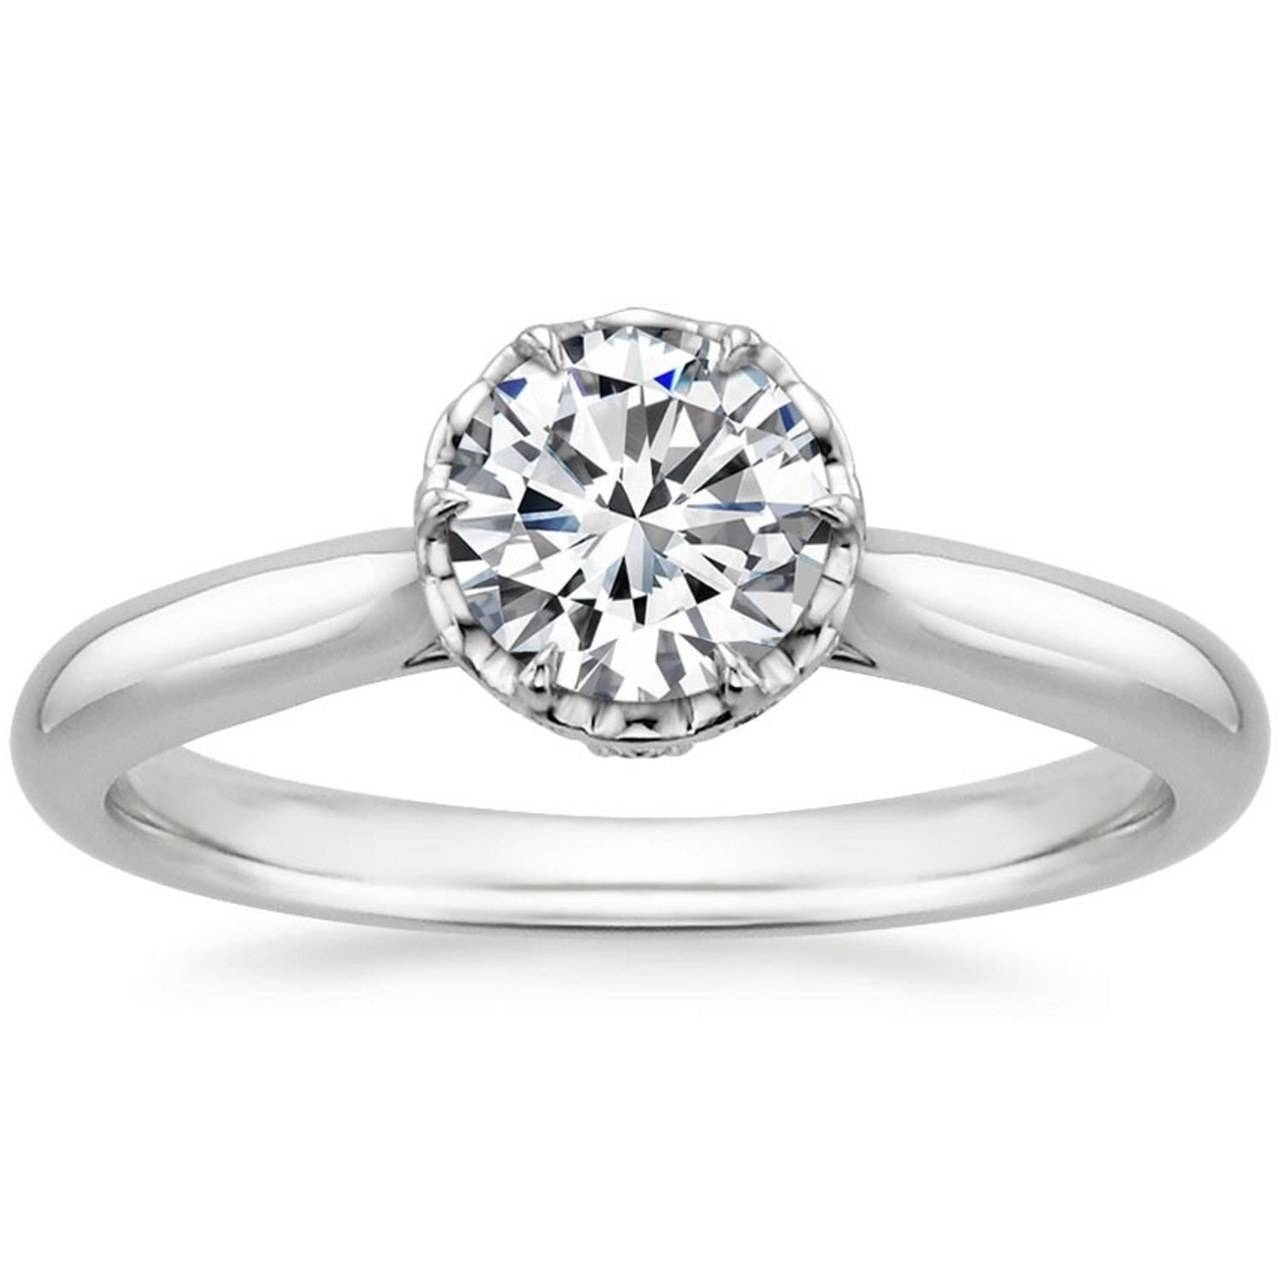 Engagement Rings: Conflict Free Diamond Engagement Rings; Dainty Throughout 5 Diamond Engagement Rings (Gallery 12 of 15)